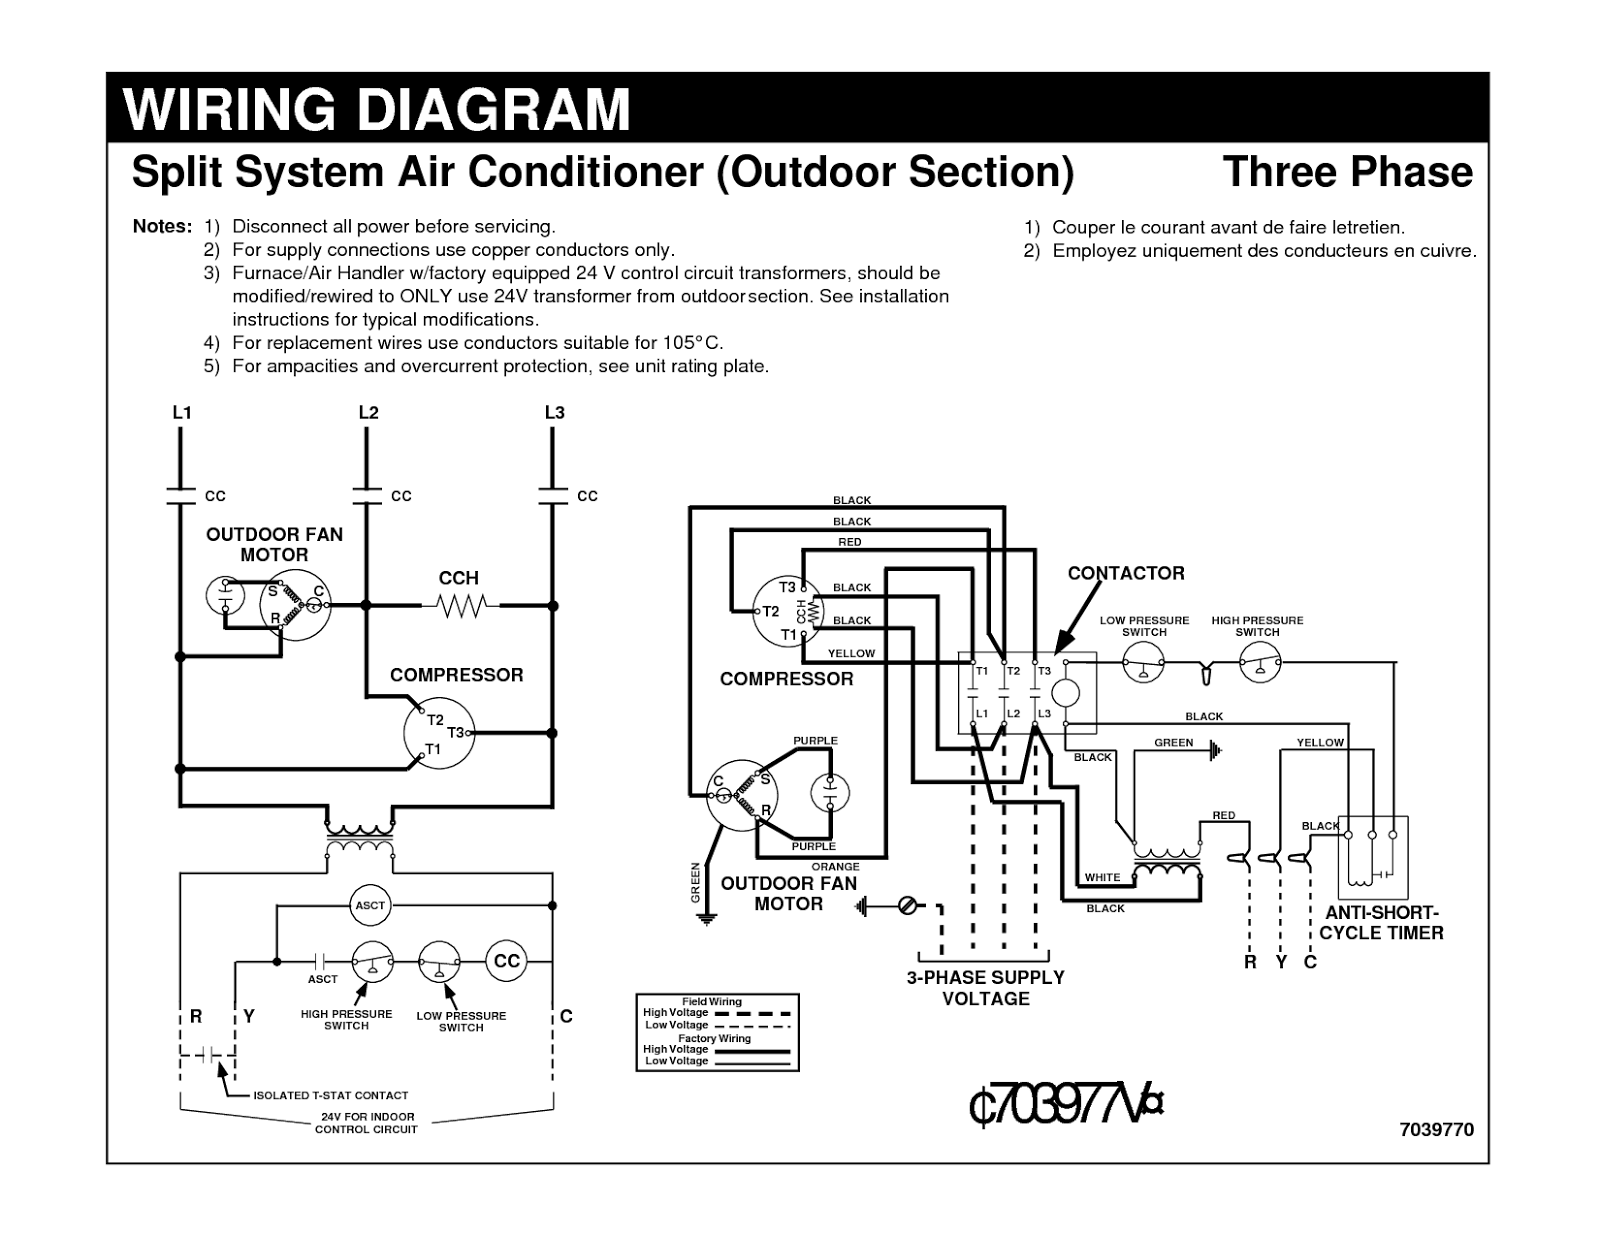 Wiring Diagram For 2005 Acura Tl